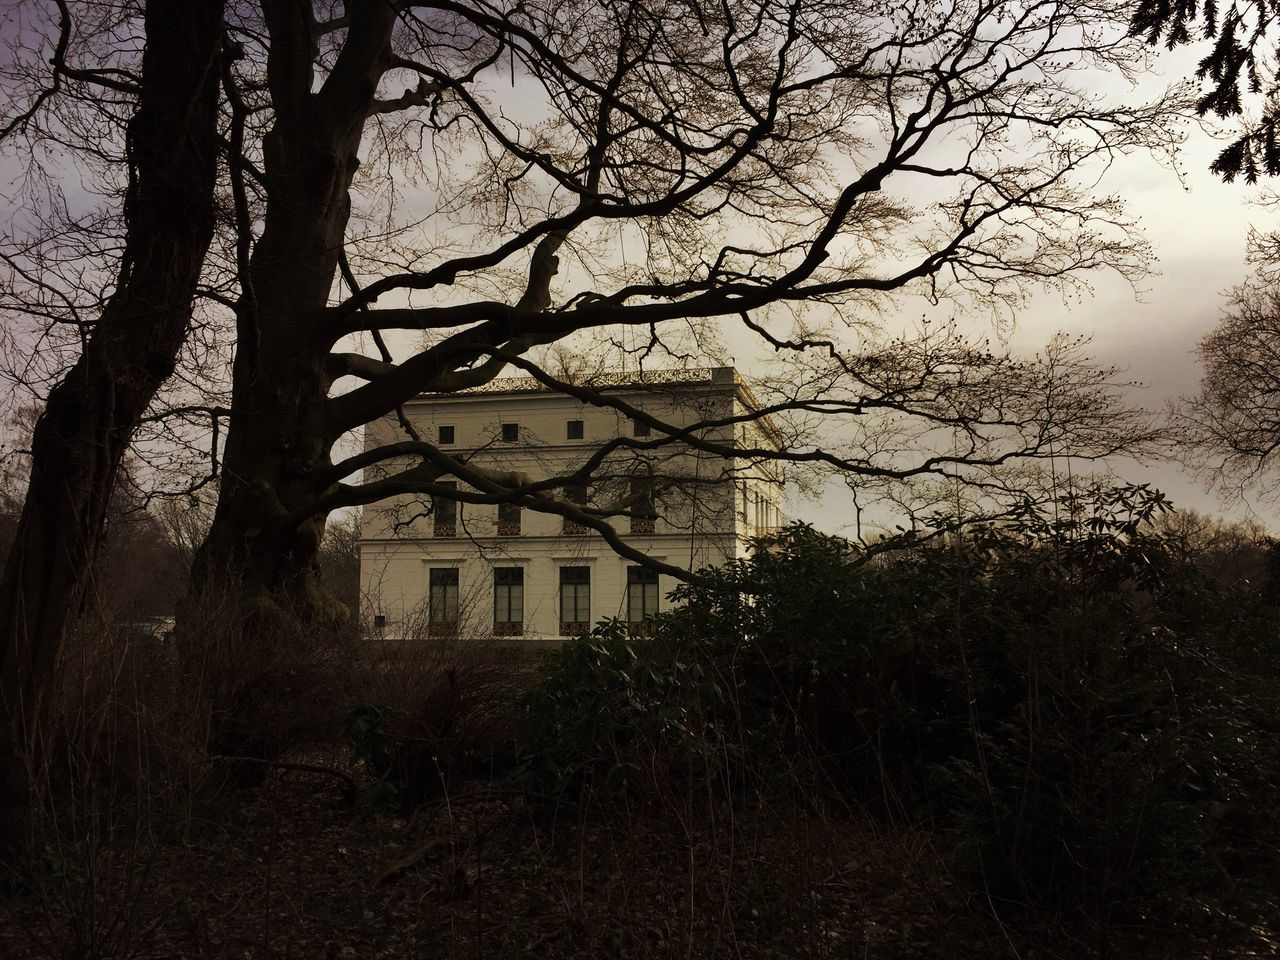 Tree Architecture Building Exterior Built Structure Landscape Earlymorning  Early Morning Silhouette_collection In A Quiet Moment Romantic Landscape Old Buildings Old Building  Classic Elegance Classical Architecture